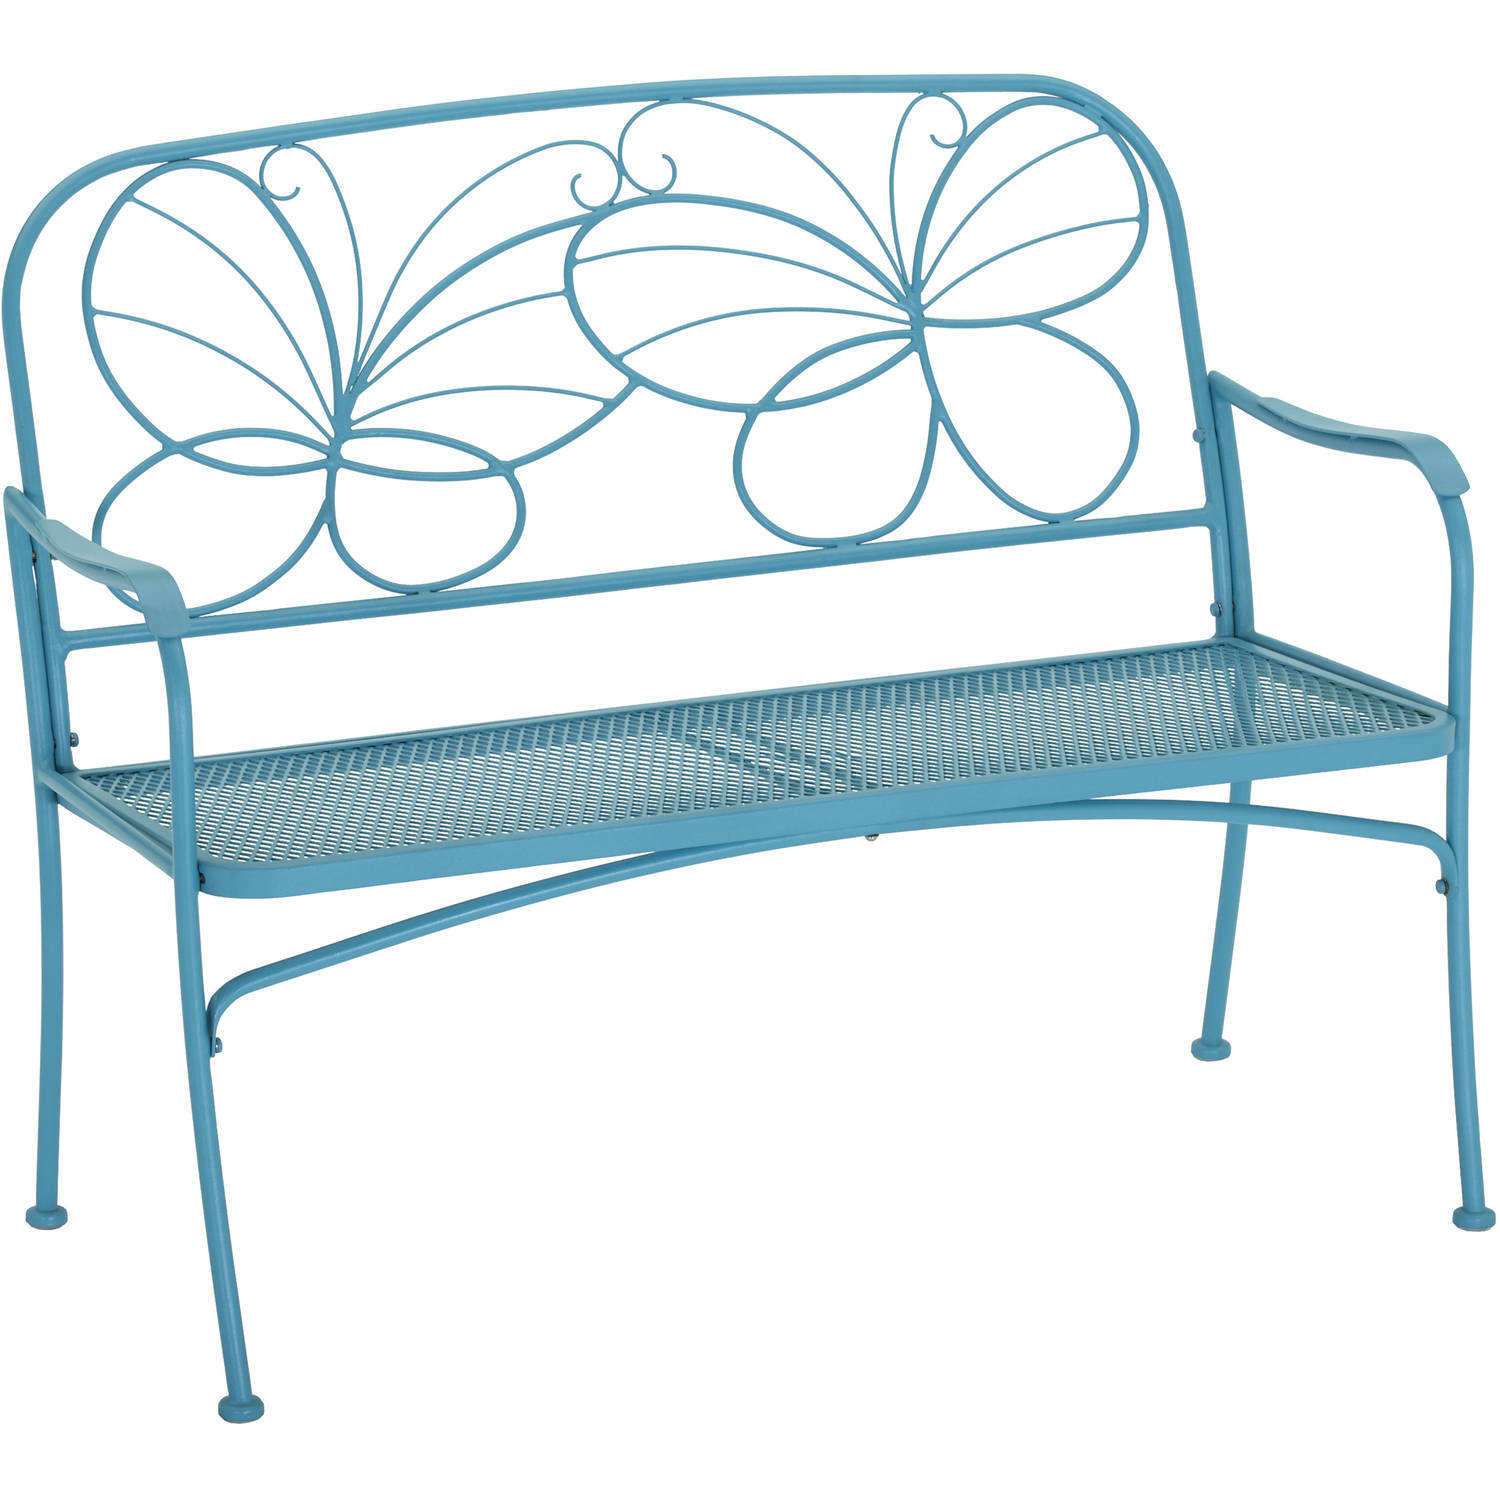 Astounding Mainstays Butterfly Outdoor Patio Bench Walmart Com Evergreenethics Interior Chair Design Evergreenethicsorg